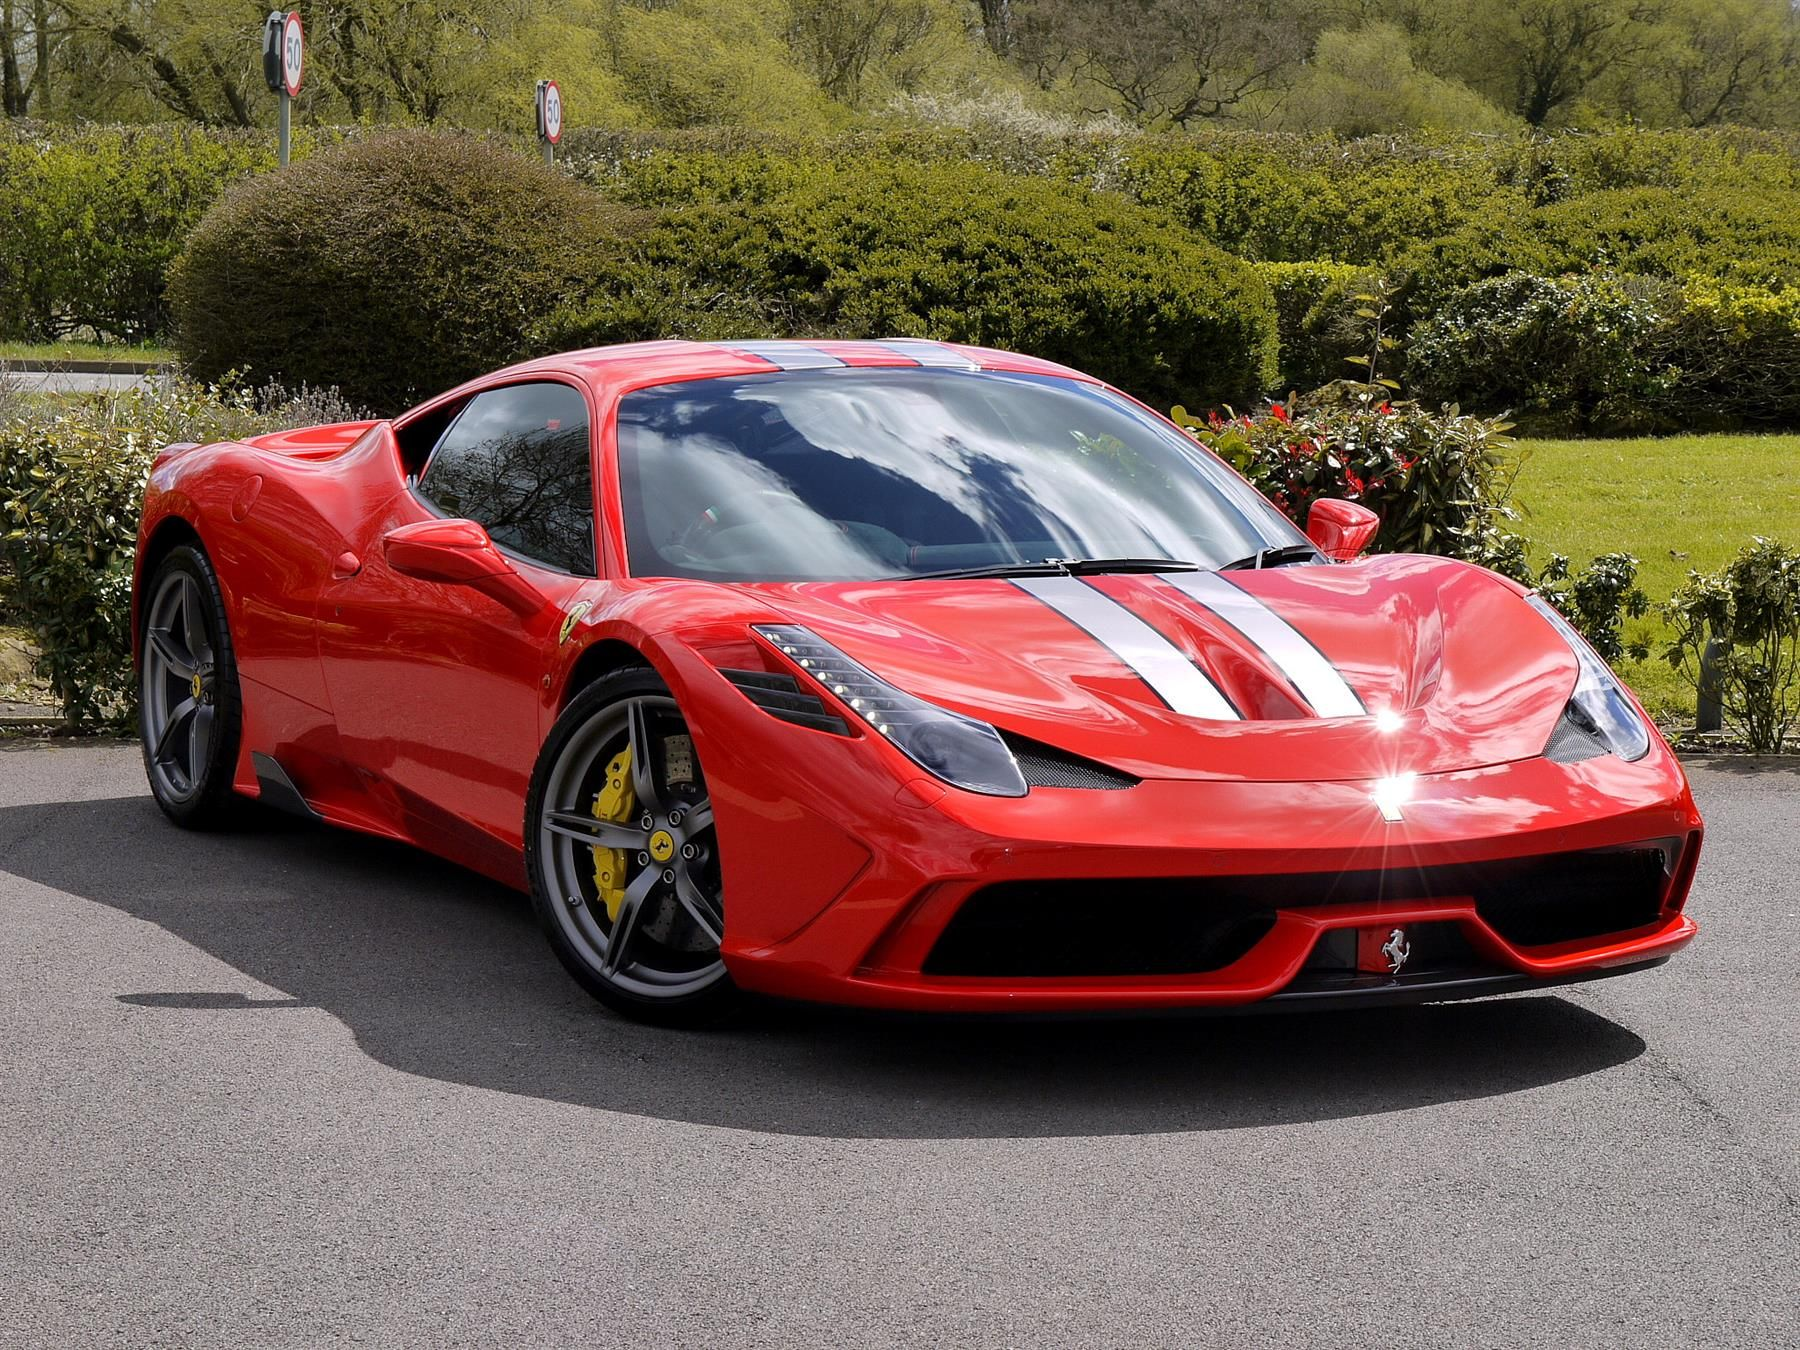 cars ferrari sale in used pistonheads classifieds for california surrey